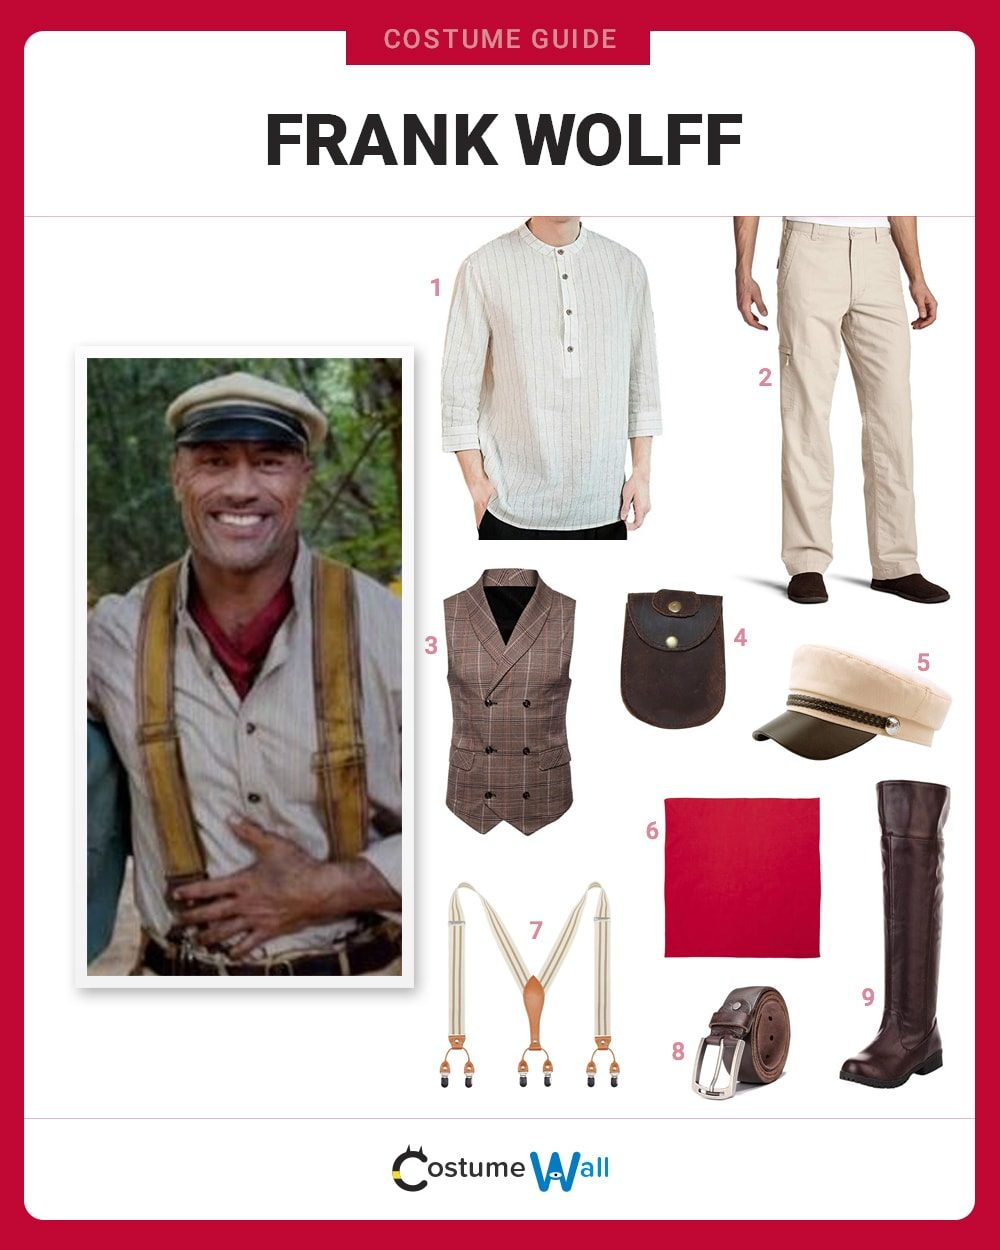 Frank Wolff Costume Guide